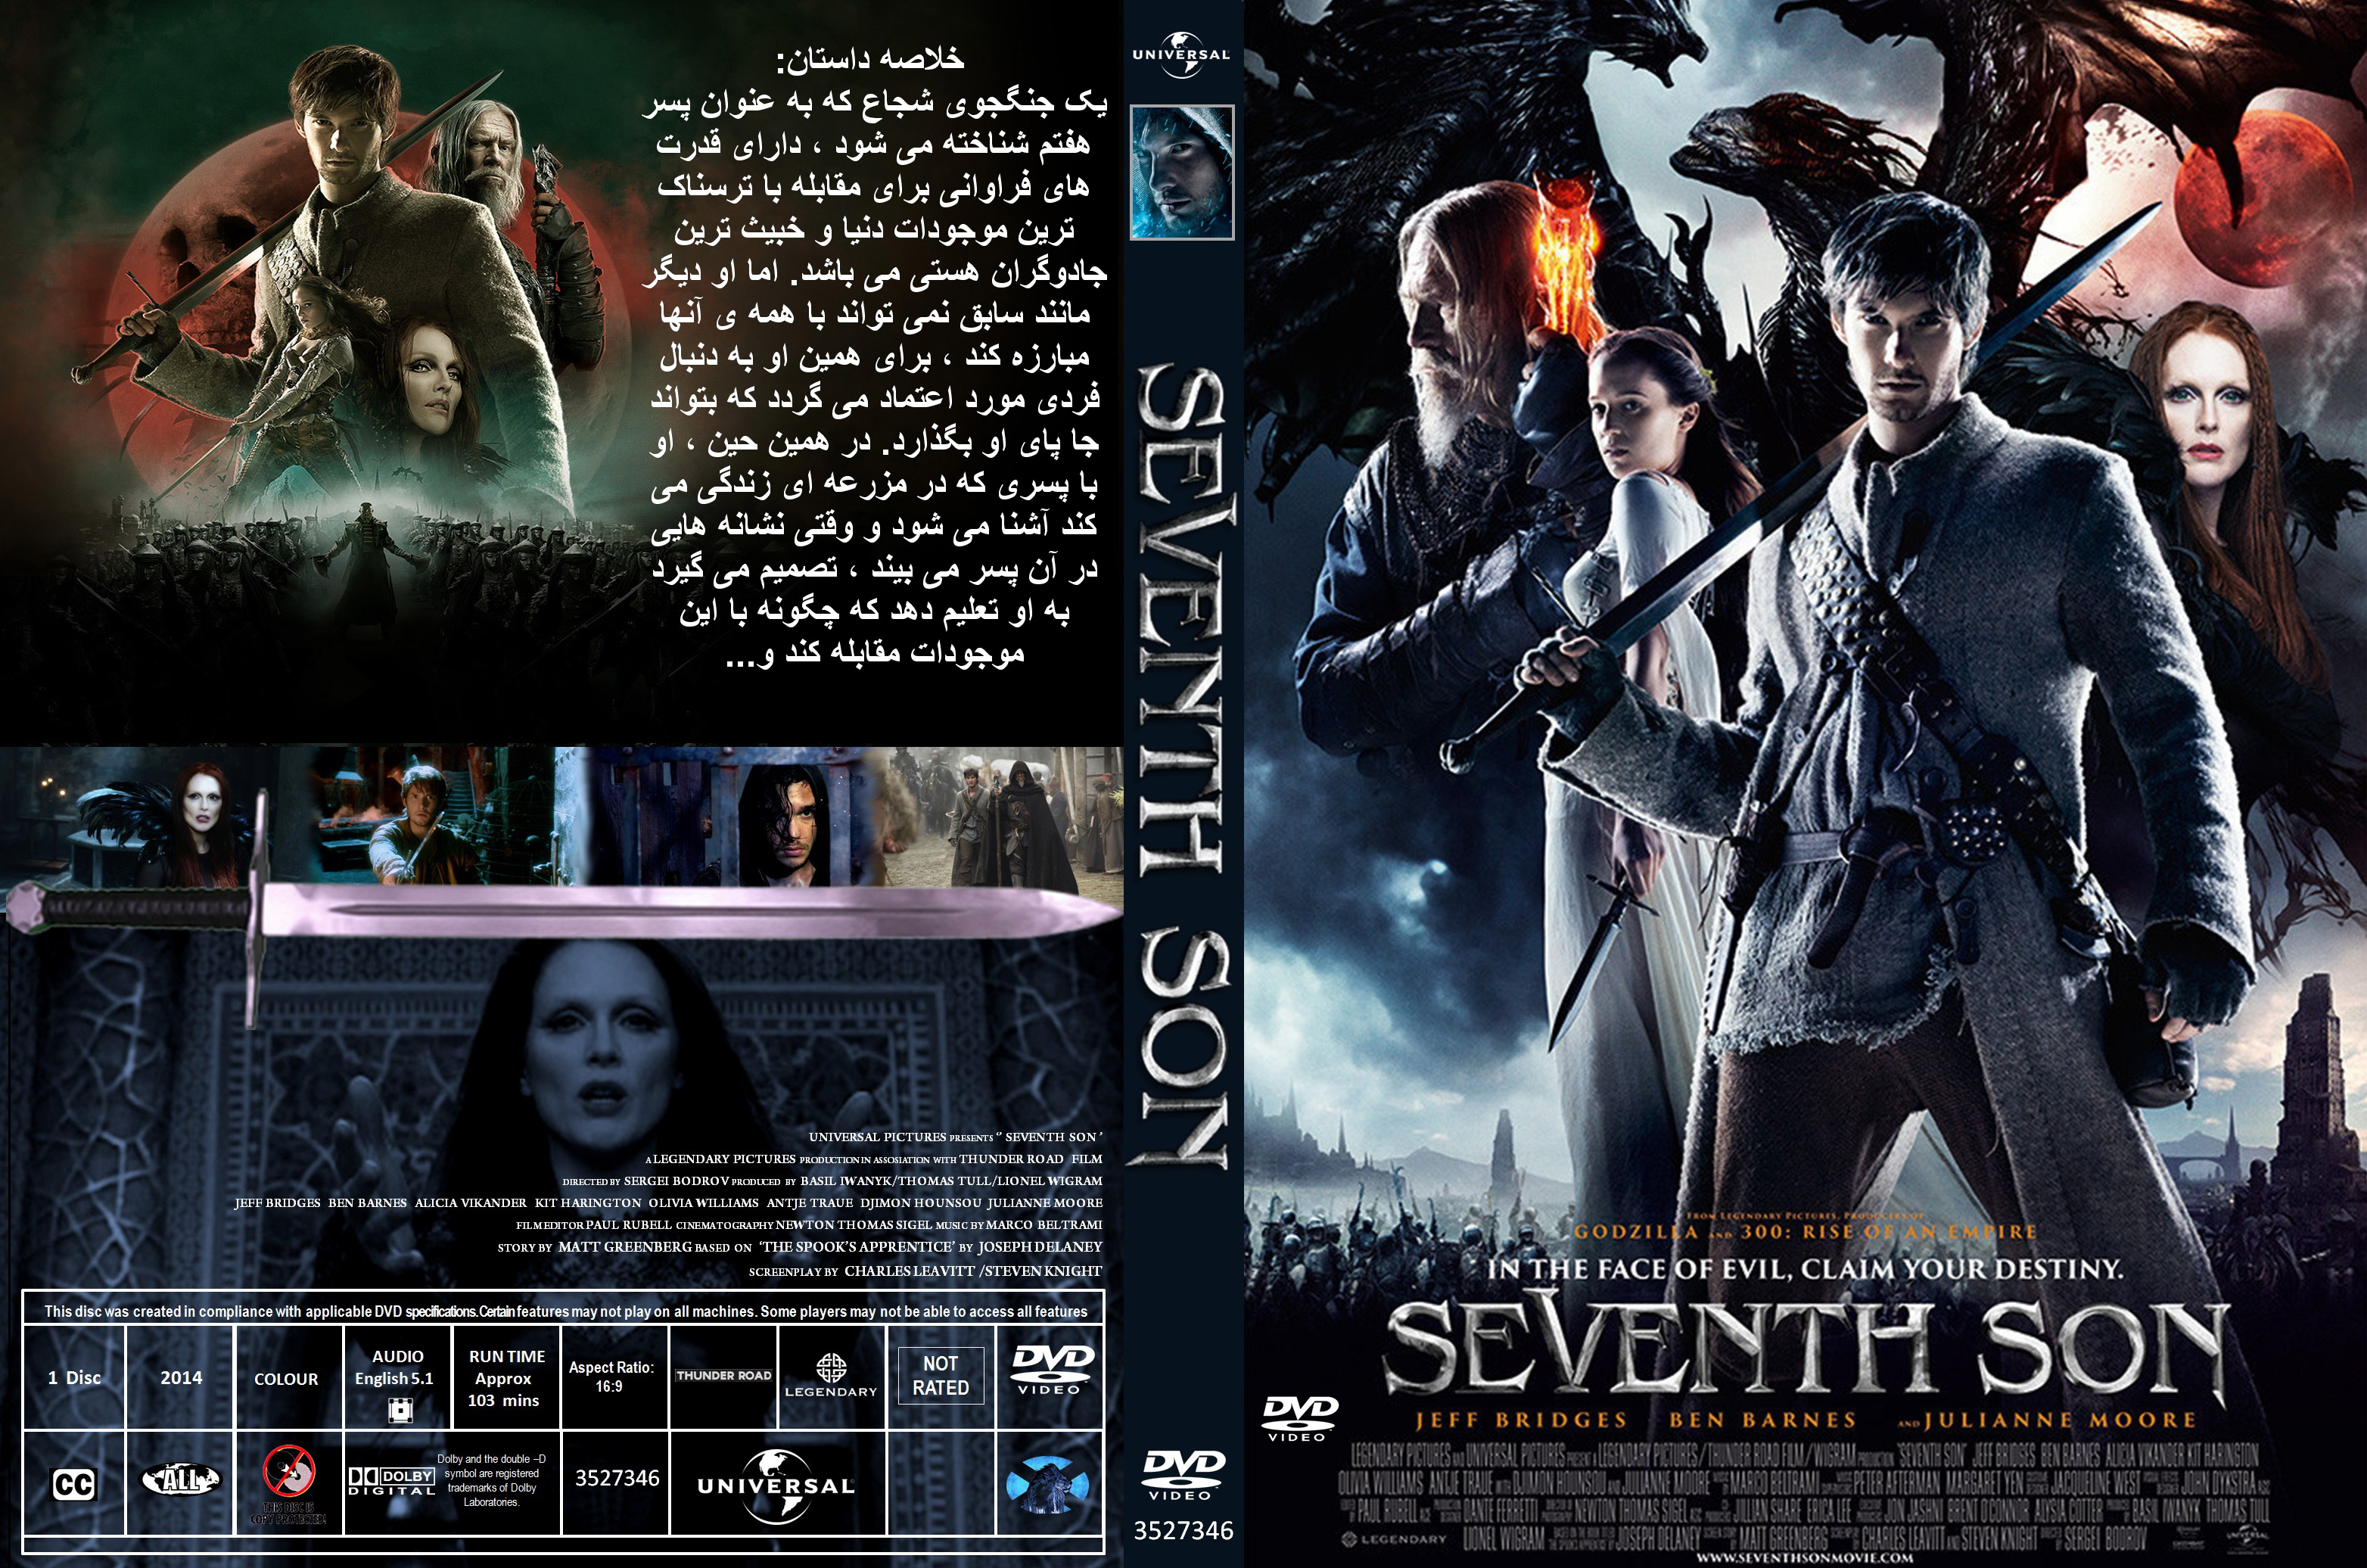 seventh son 2014 full movie english